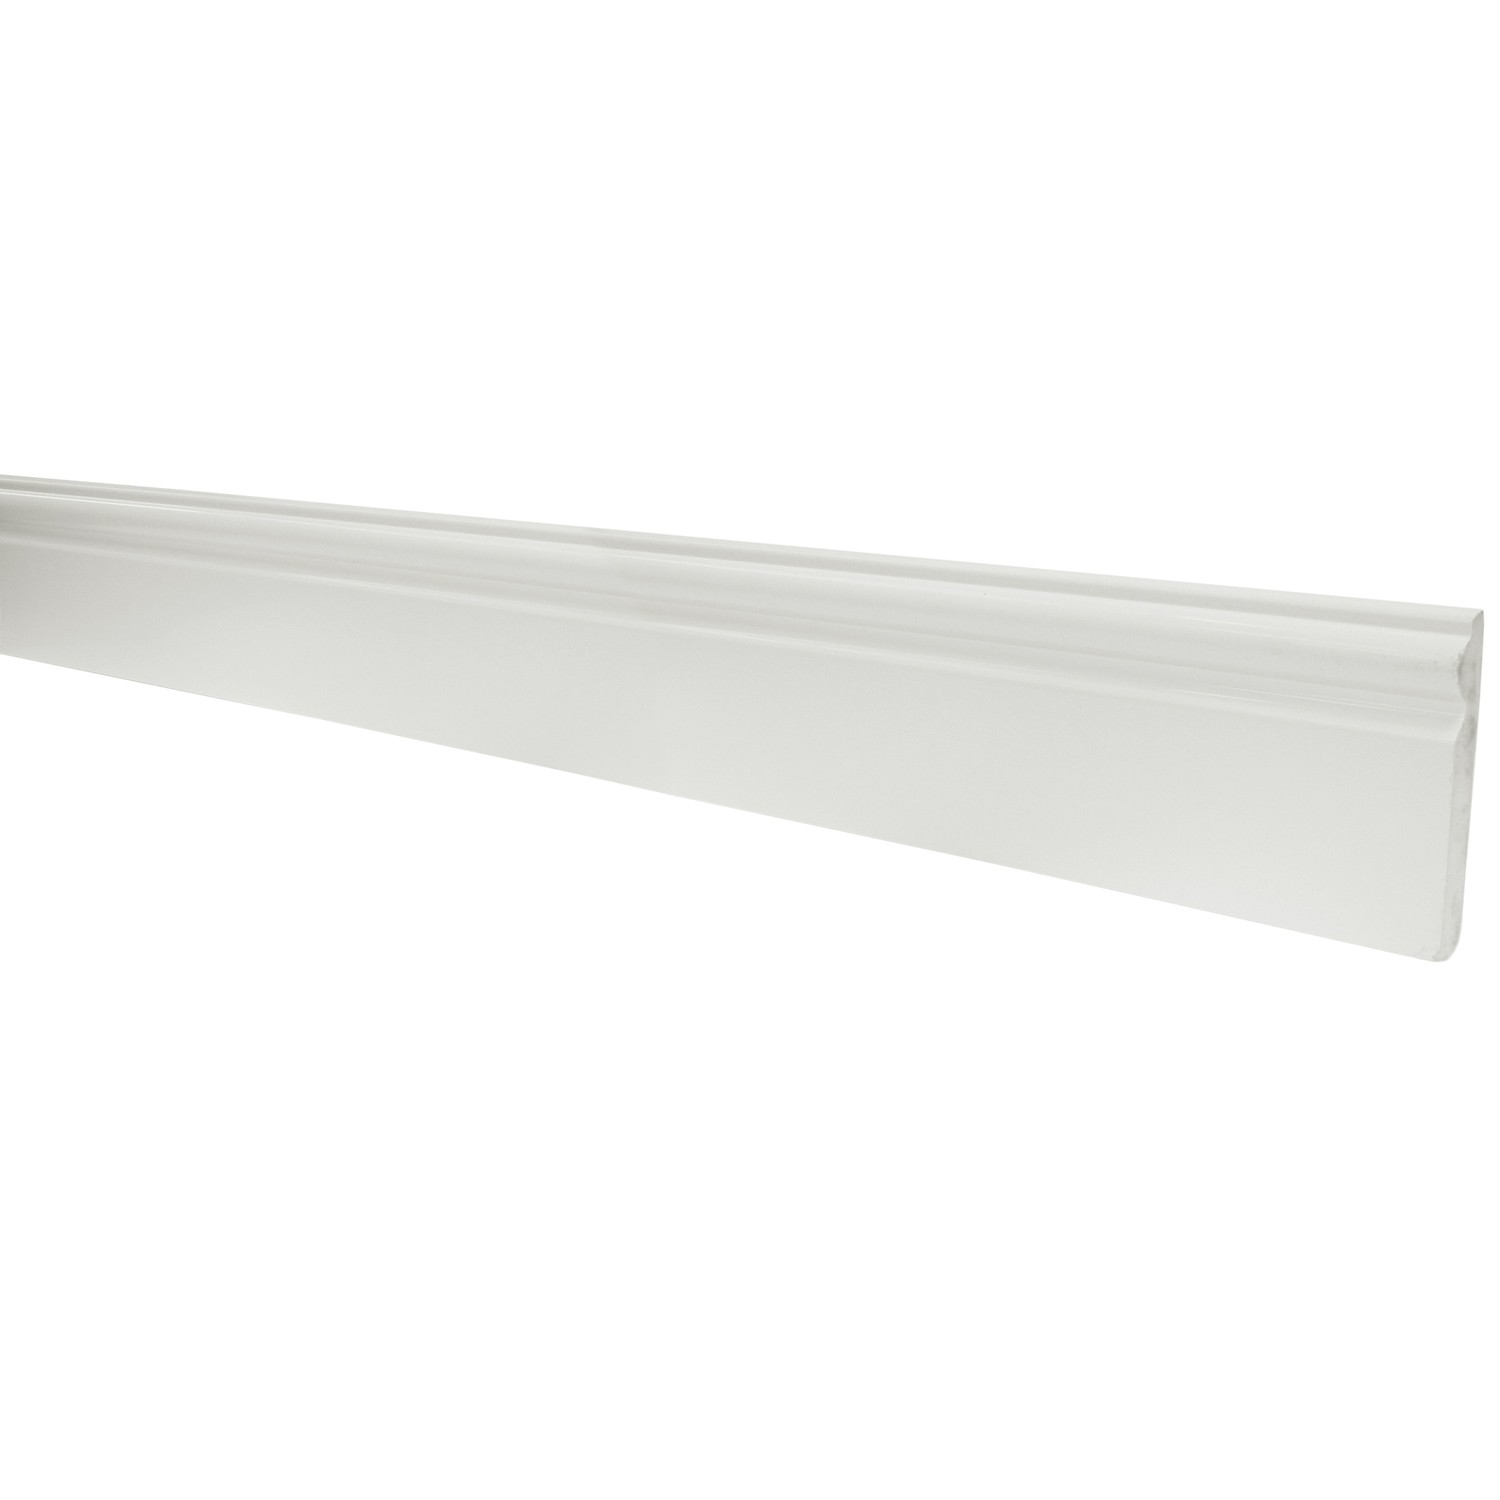 PSD Ogee Plastic Skirting Board - White, 95mm, 2.5 metre